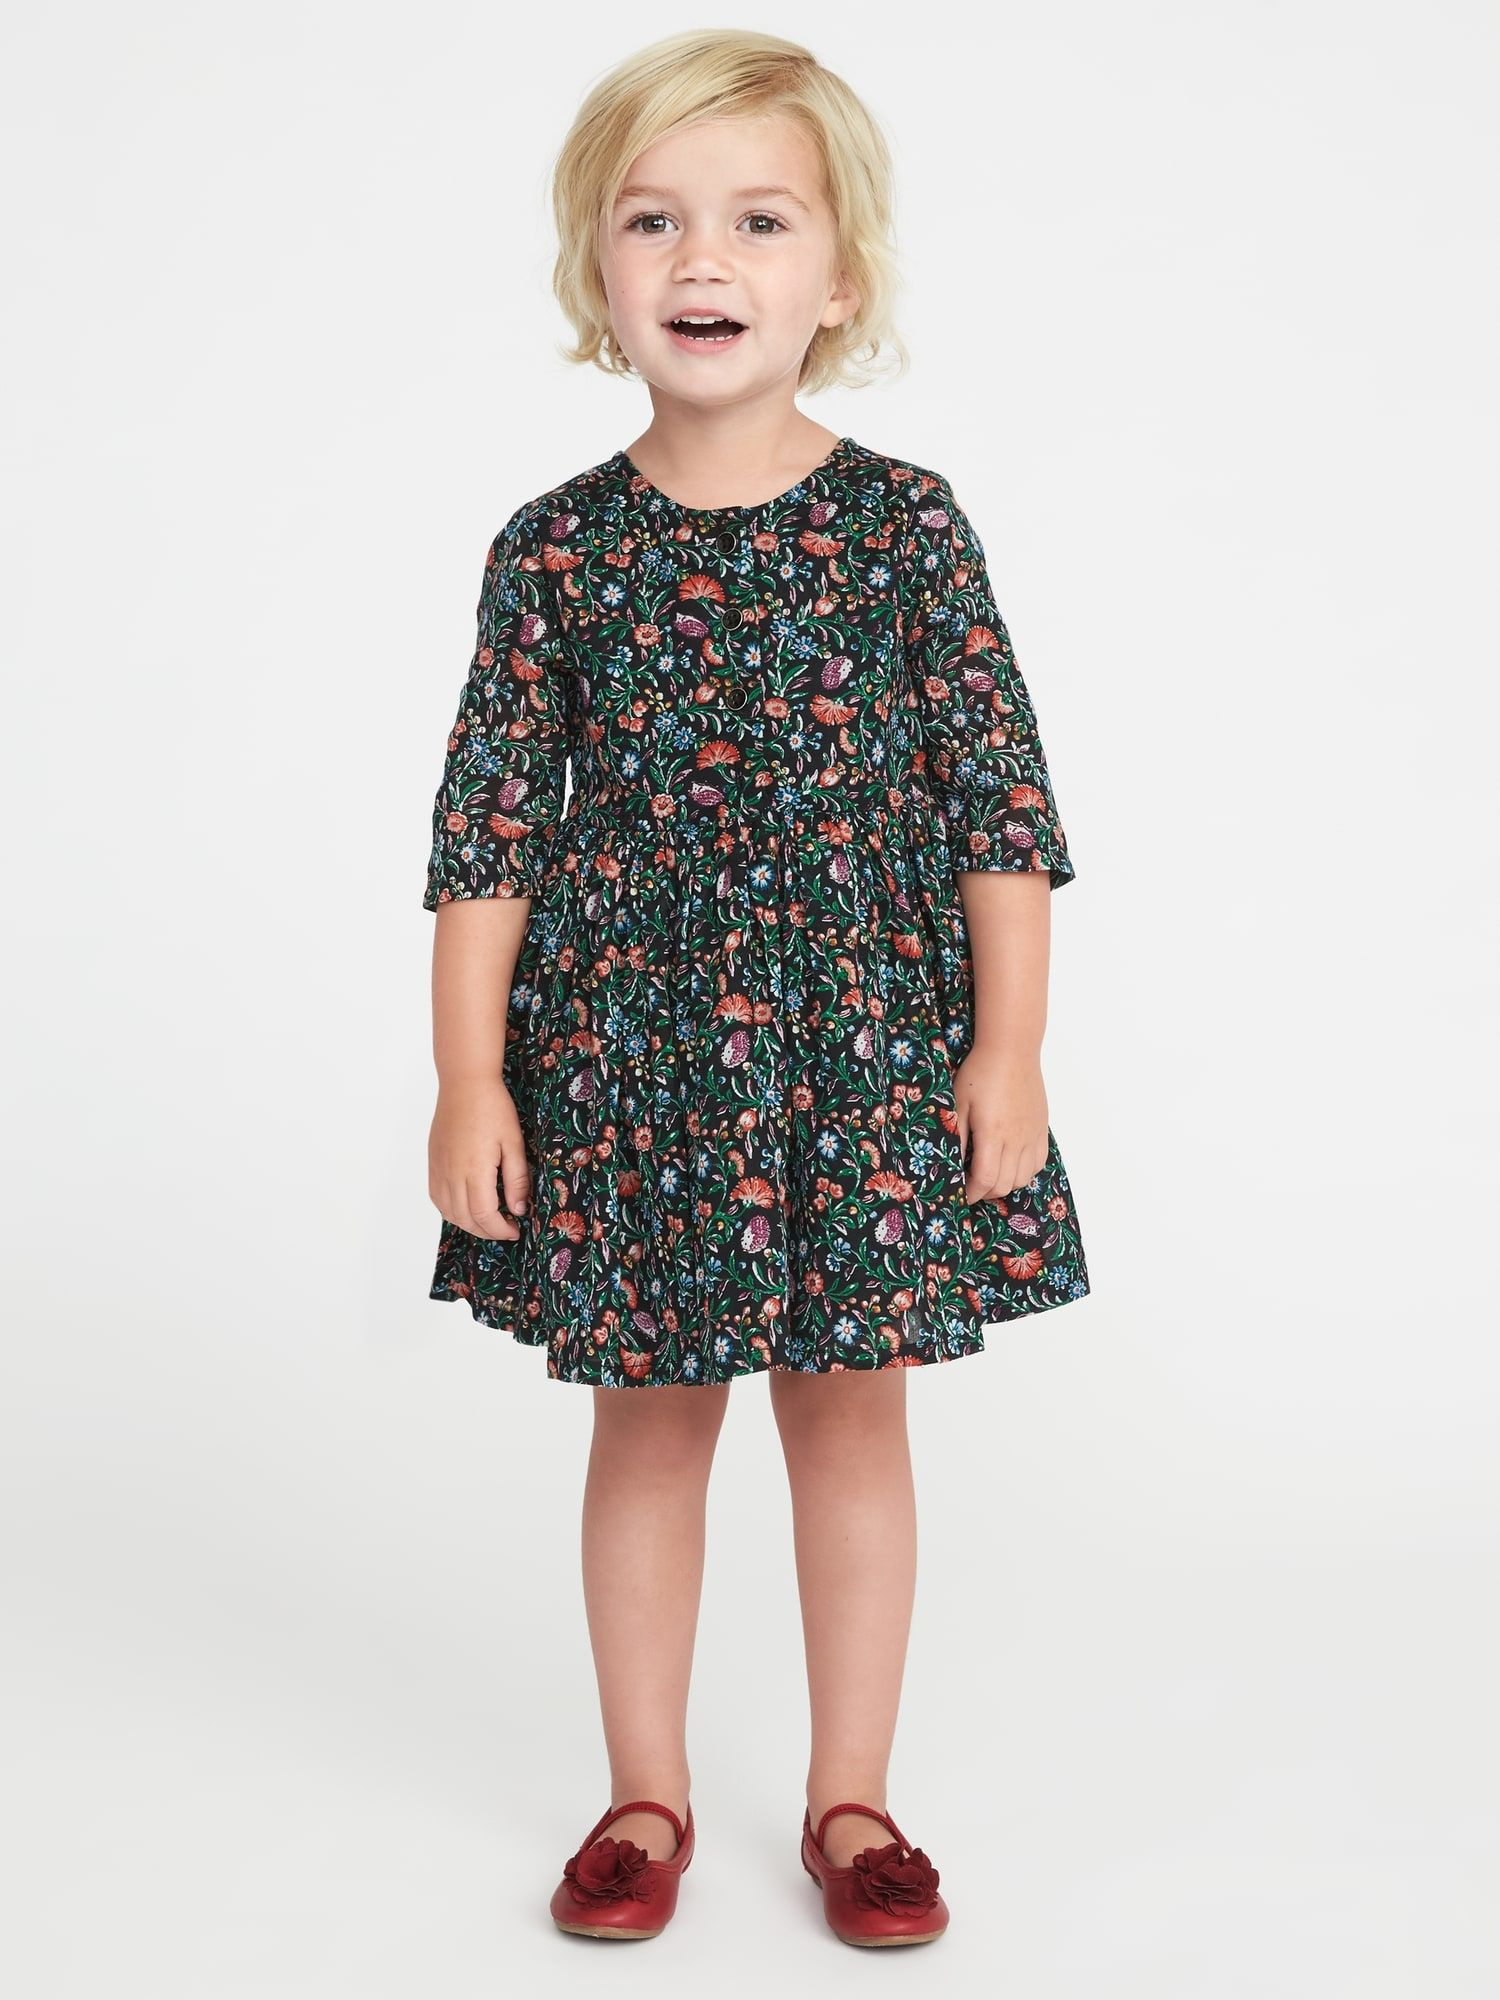 322bfa0747bf4 Fit & Flare Button-Front Dress for Toddler Girls | Old Navy | baby ...